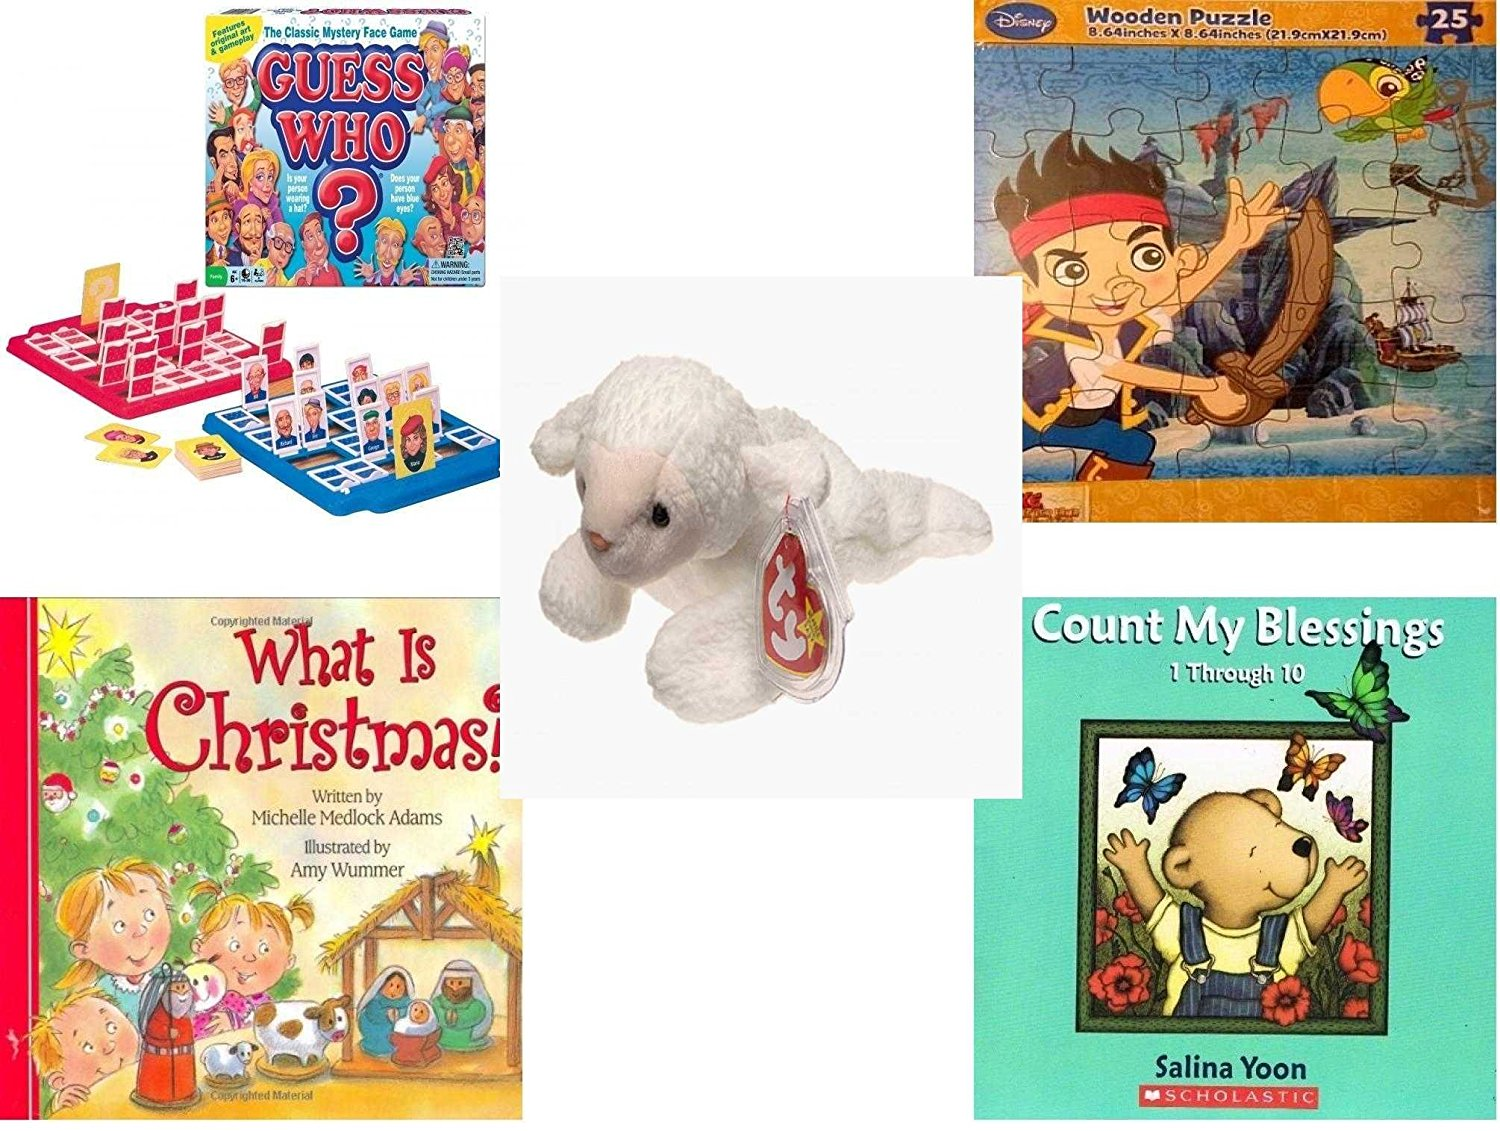 Children's Gift Bundle - Ages 3-5 [5 Piece] - Guess Who? Board Game - Disney Jake and The Never Land Pirates Puzzle Toy - Ty Beanie Baby - Fleece the Lamb - What Is Christmas? Board Book - Count My